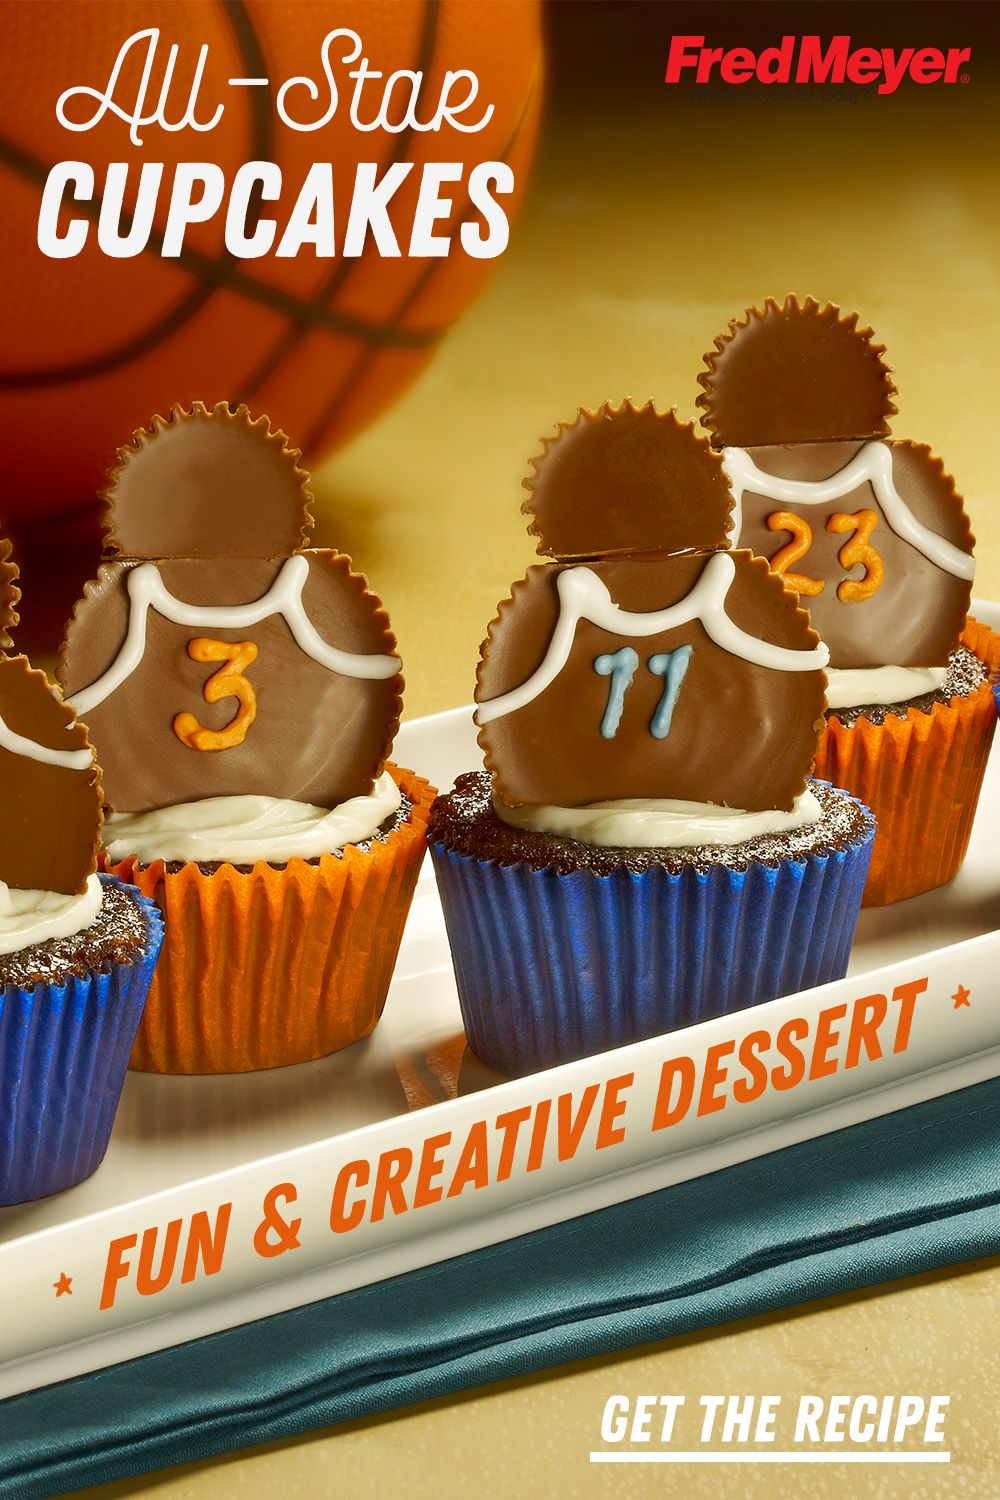 Awe Inspiring Reeses All Star Team Cupcakes Recipe Creative Desserts Funny Birthday Cards Online Inifofree Goldxyz